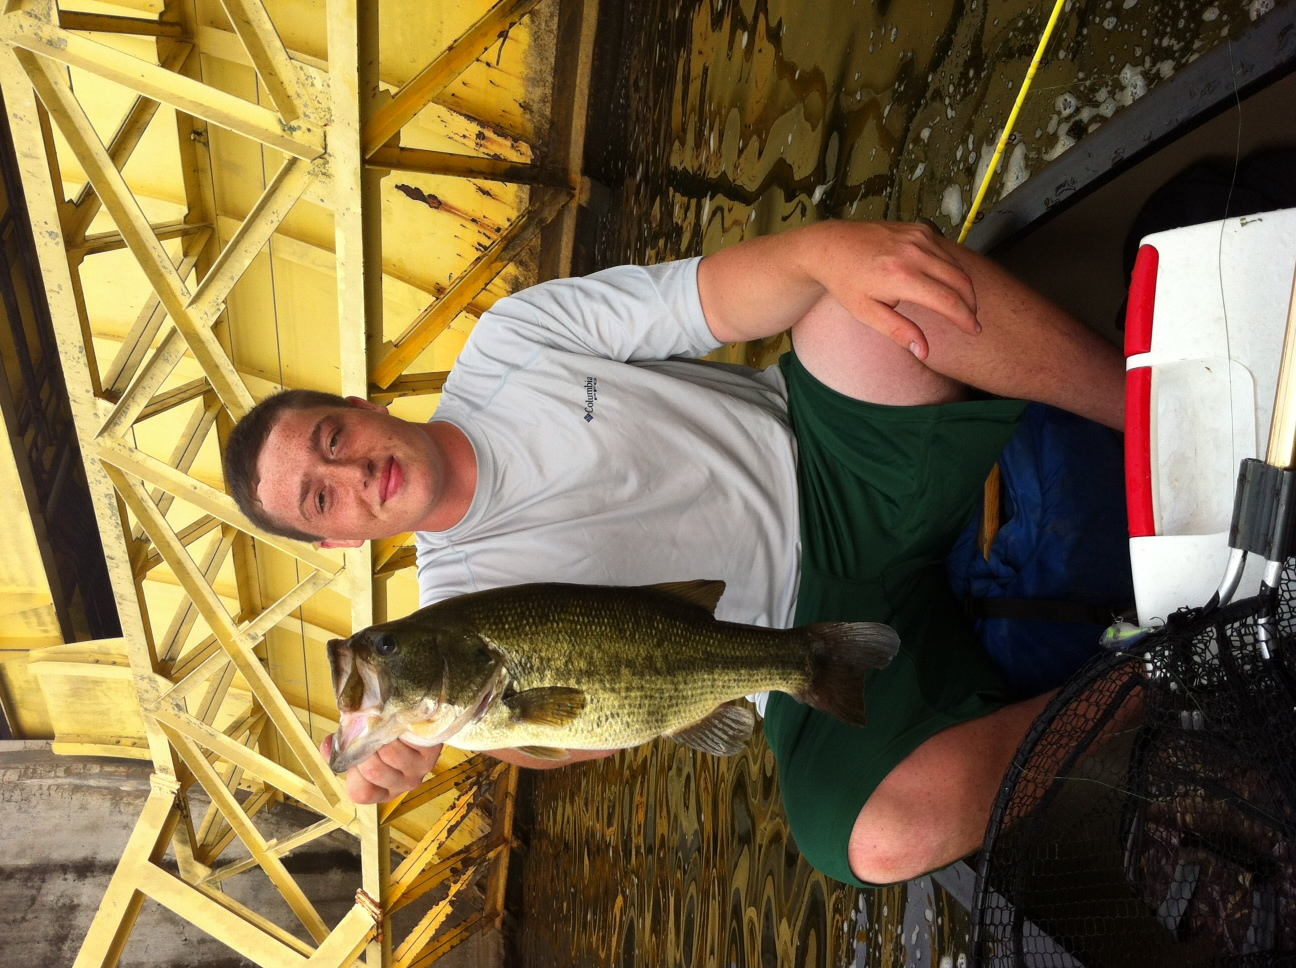 Wyatt Baumler Syracuse New York/ Region 1  Went fishing with my brother a day after a big rain